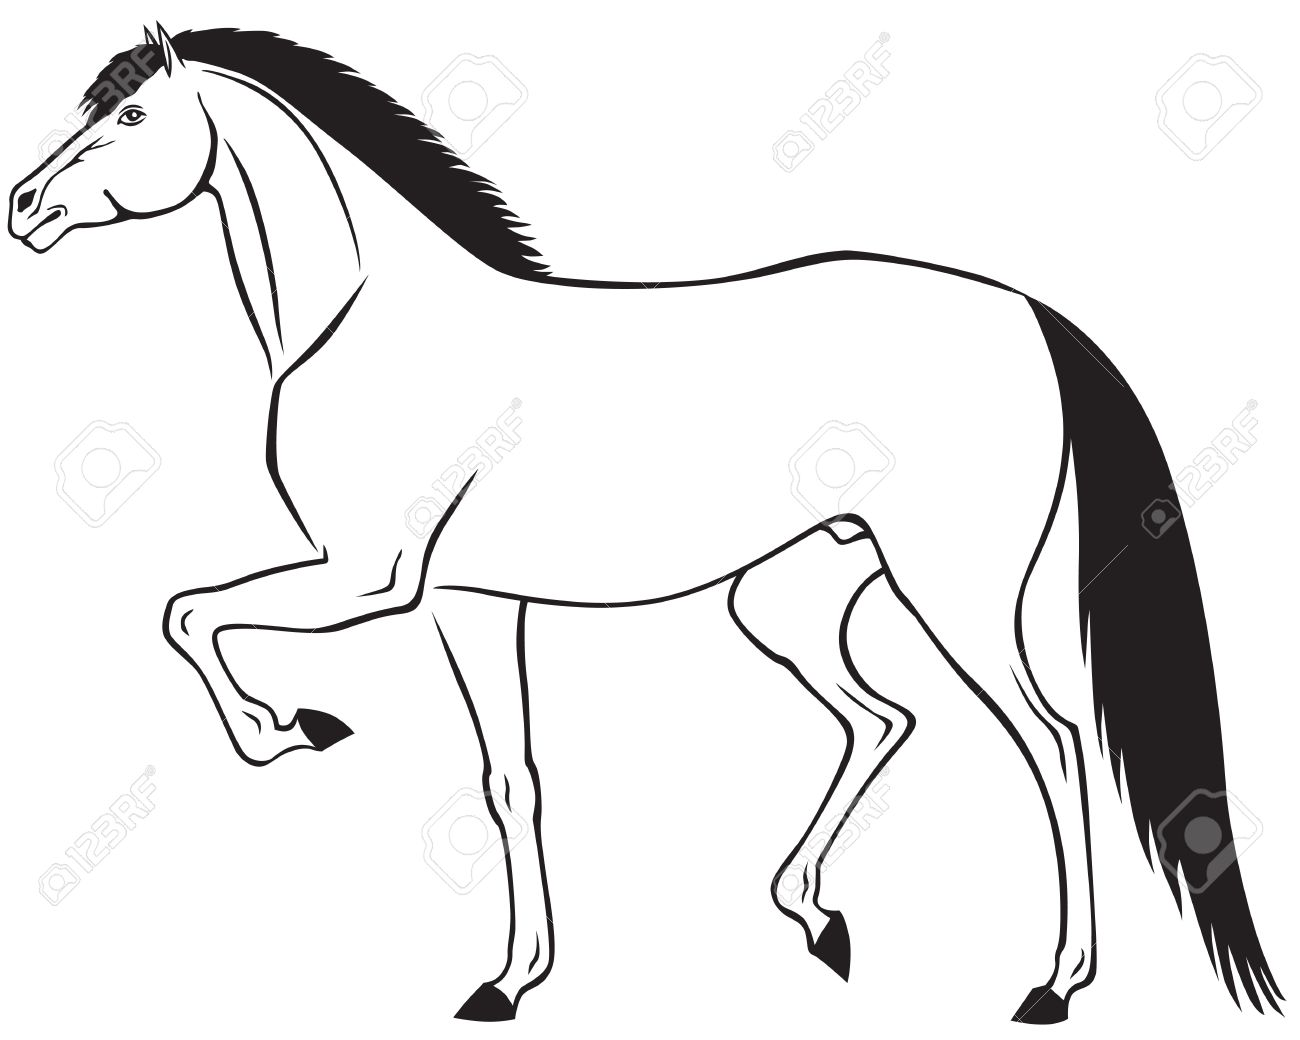 Trot clipart #16, Download drawings